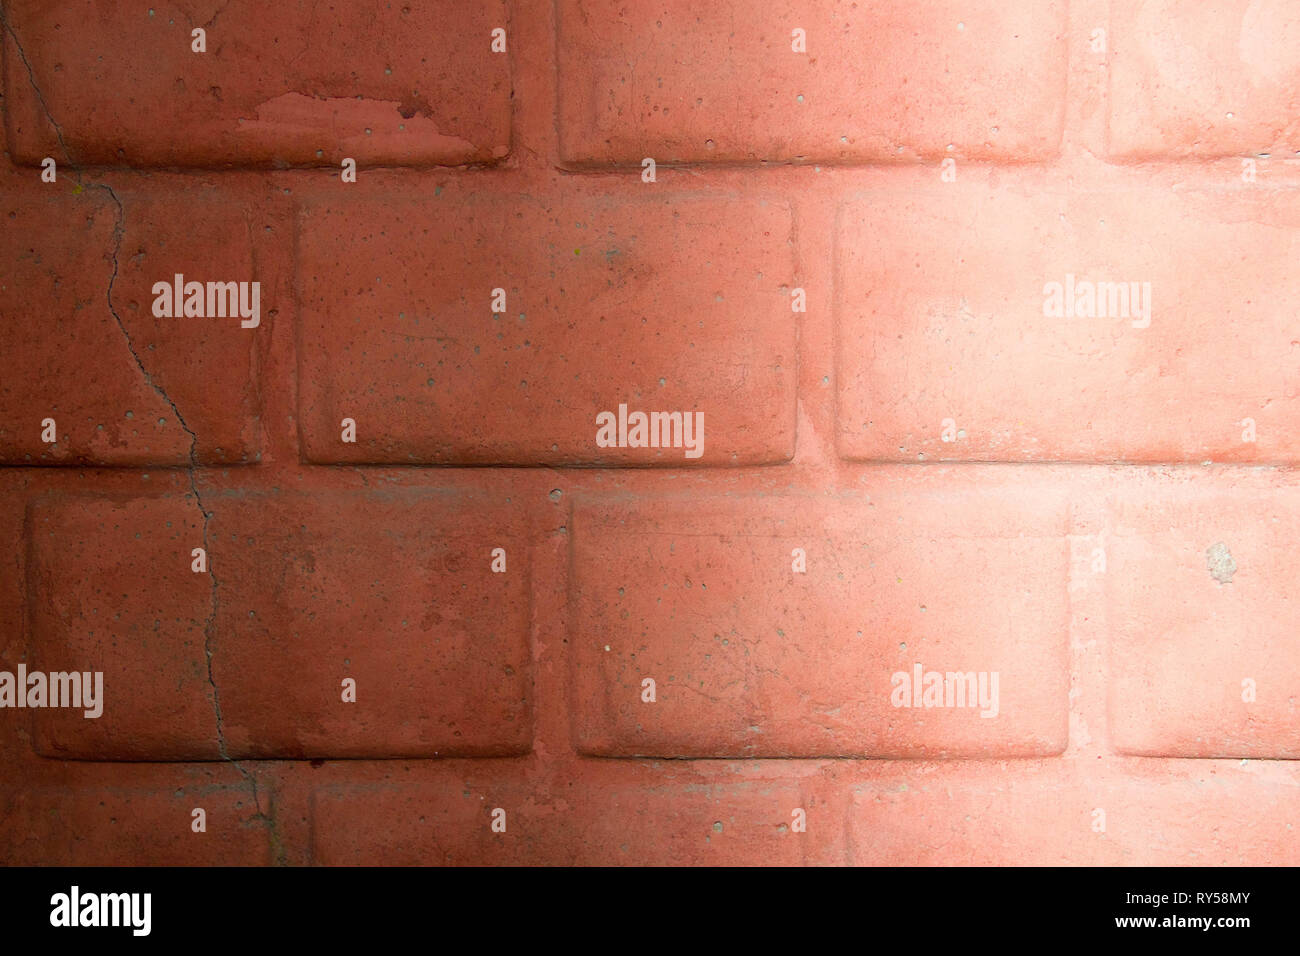 Photo wall brick wall. The texture of an old brick wall, shot under natural lighting. Wall beginning of the 20th century. - Stock Image